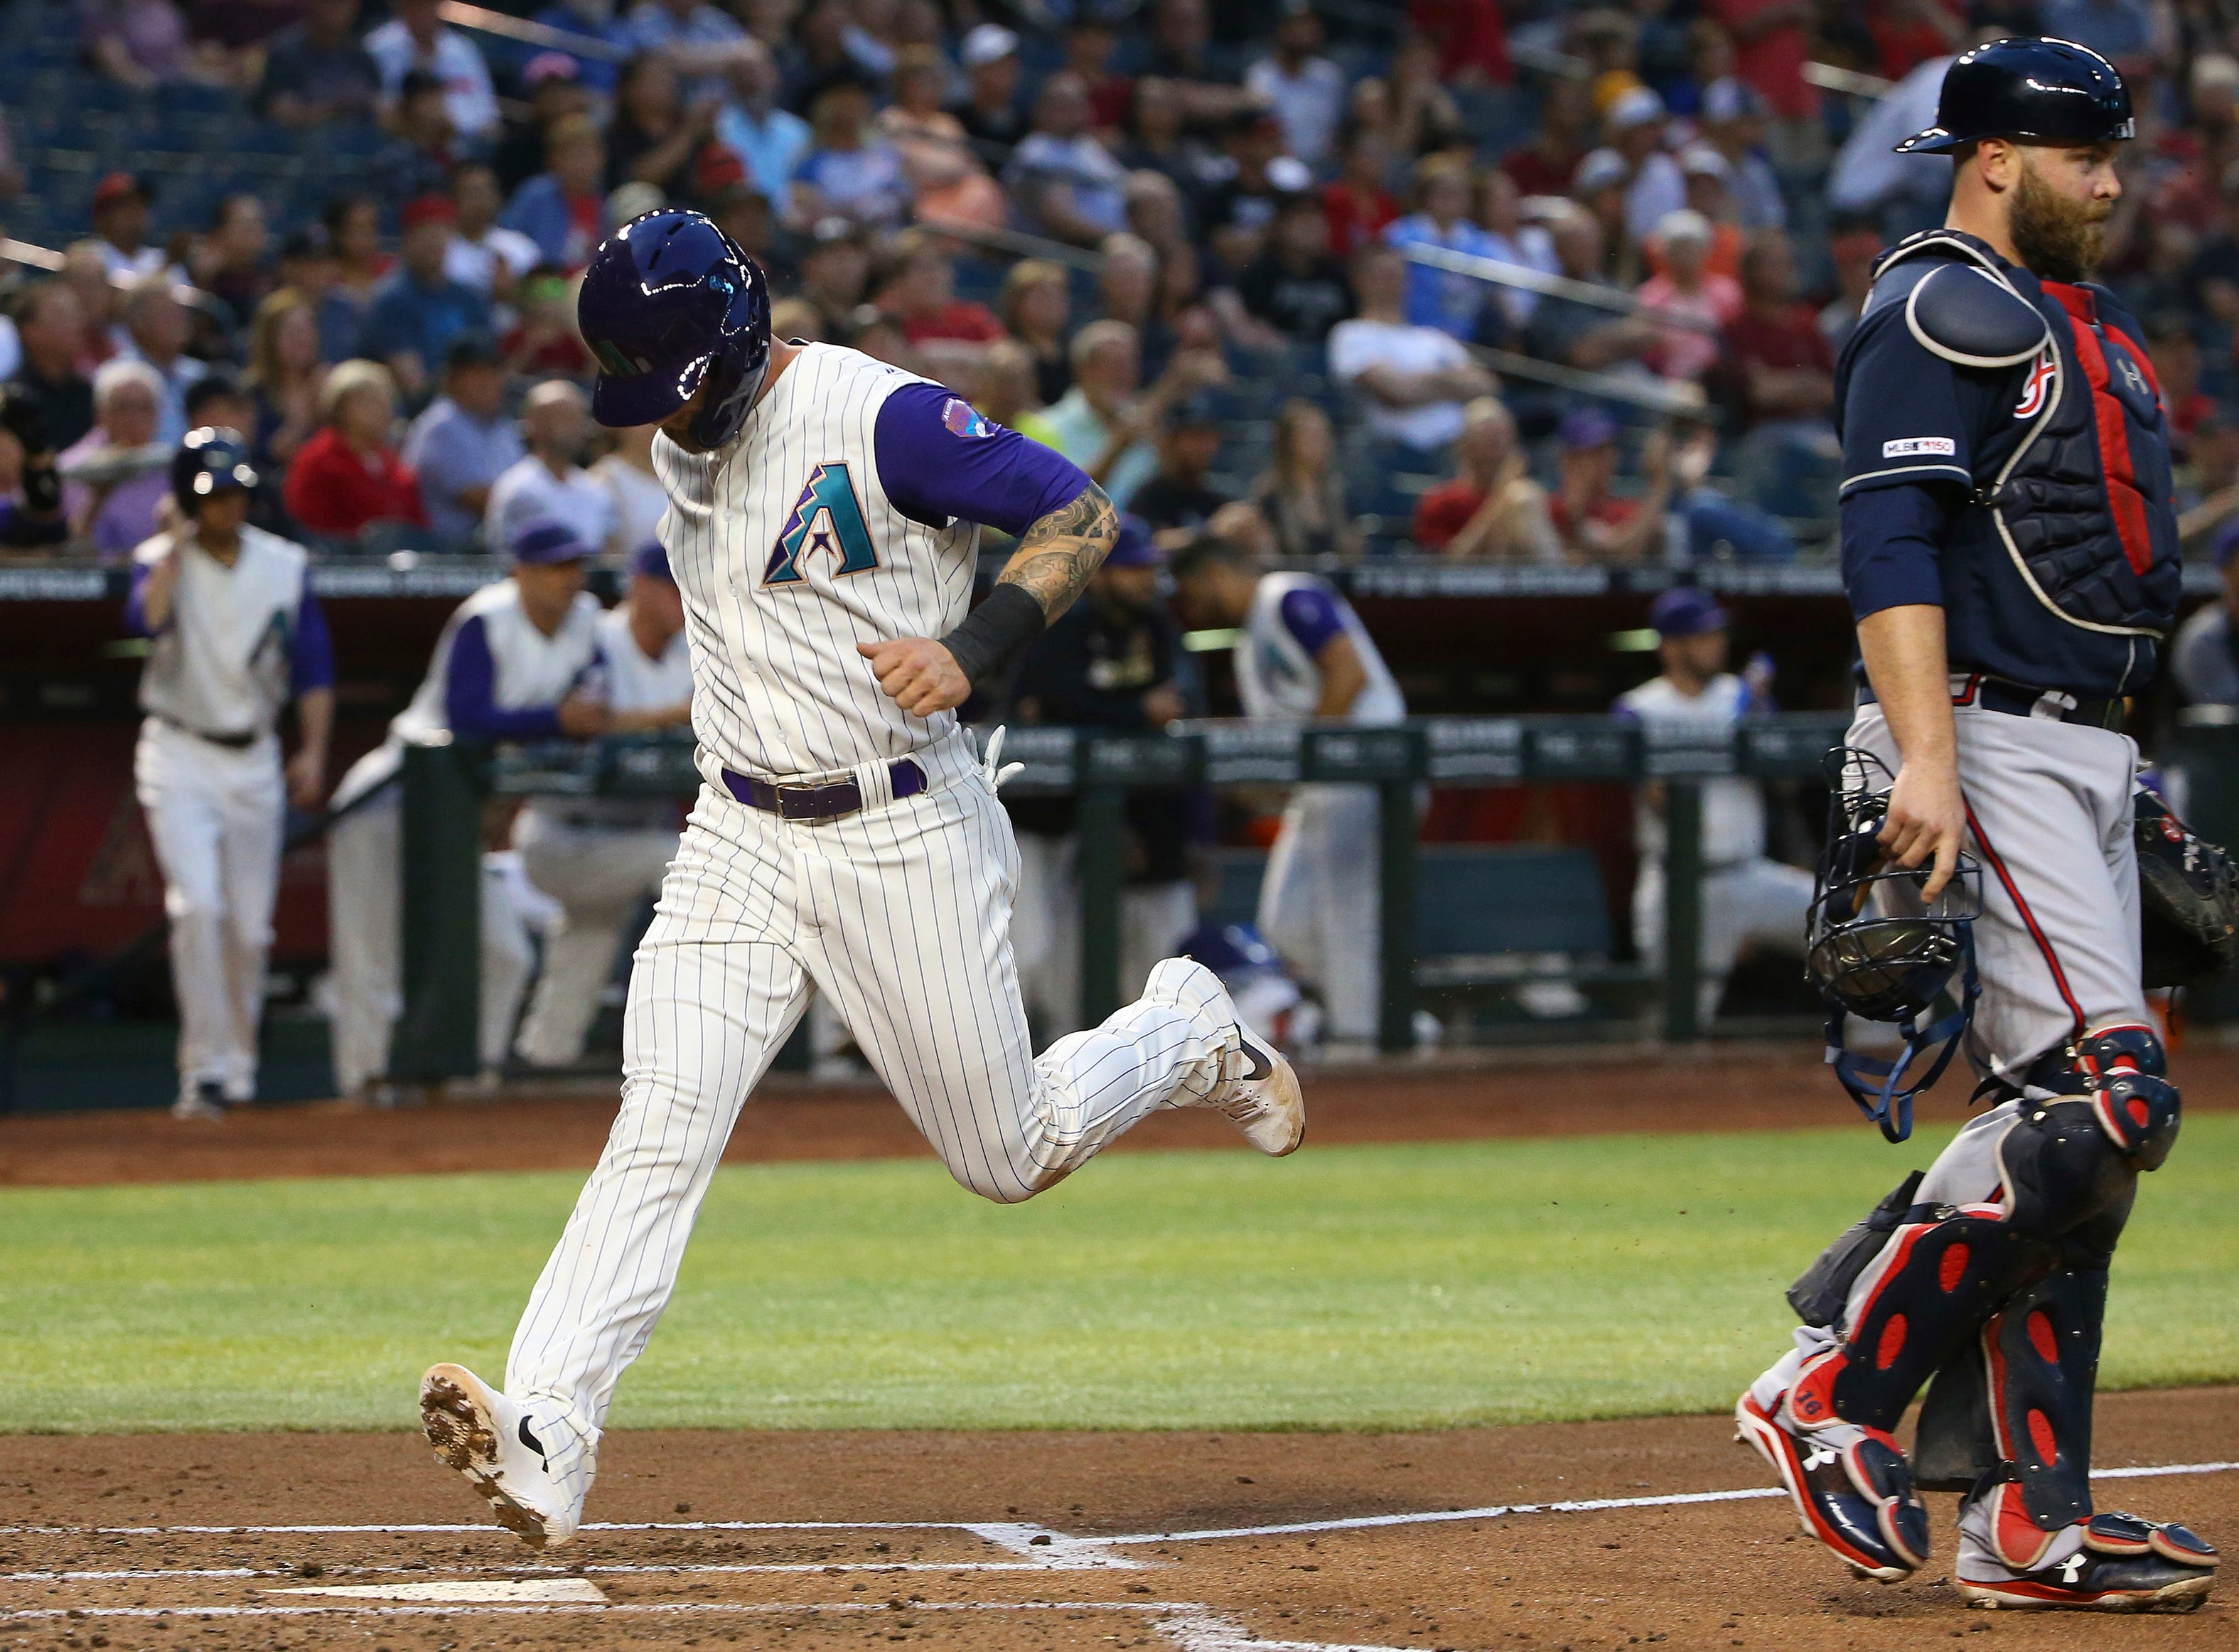 Arizona Diamondbacks' Christian Walker, left, scores a run as Atlanta Braves catcher Brian McCann, right, watches the movement of the ball during the second inning of a baseball game Thursday, May 9, 2019, in Phoenix. (AP Photo/Ross D. Franklin)